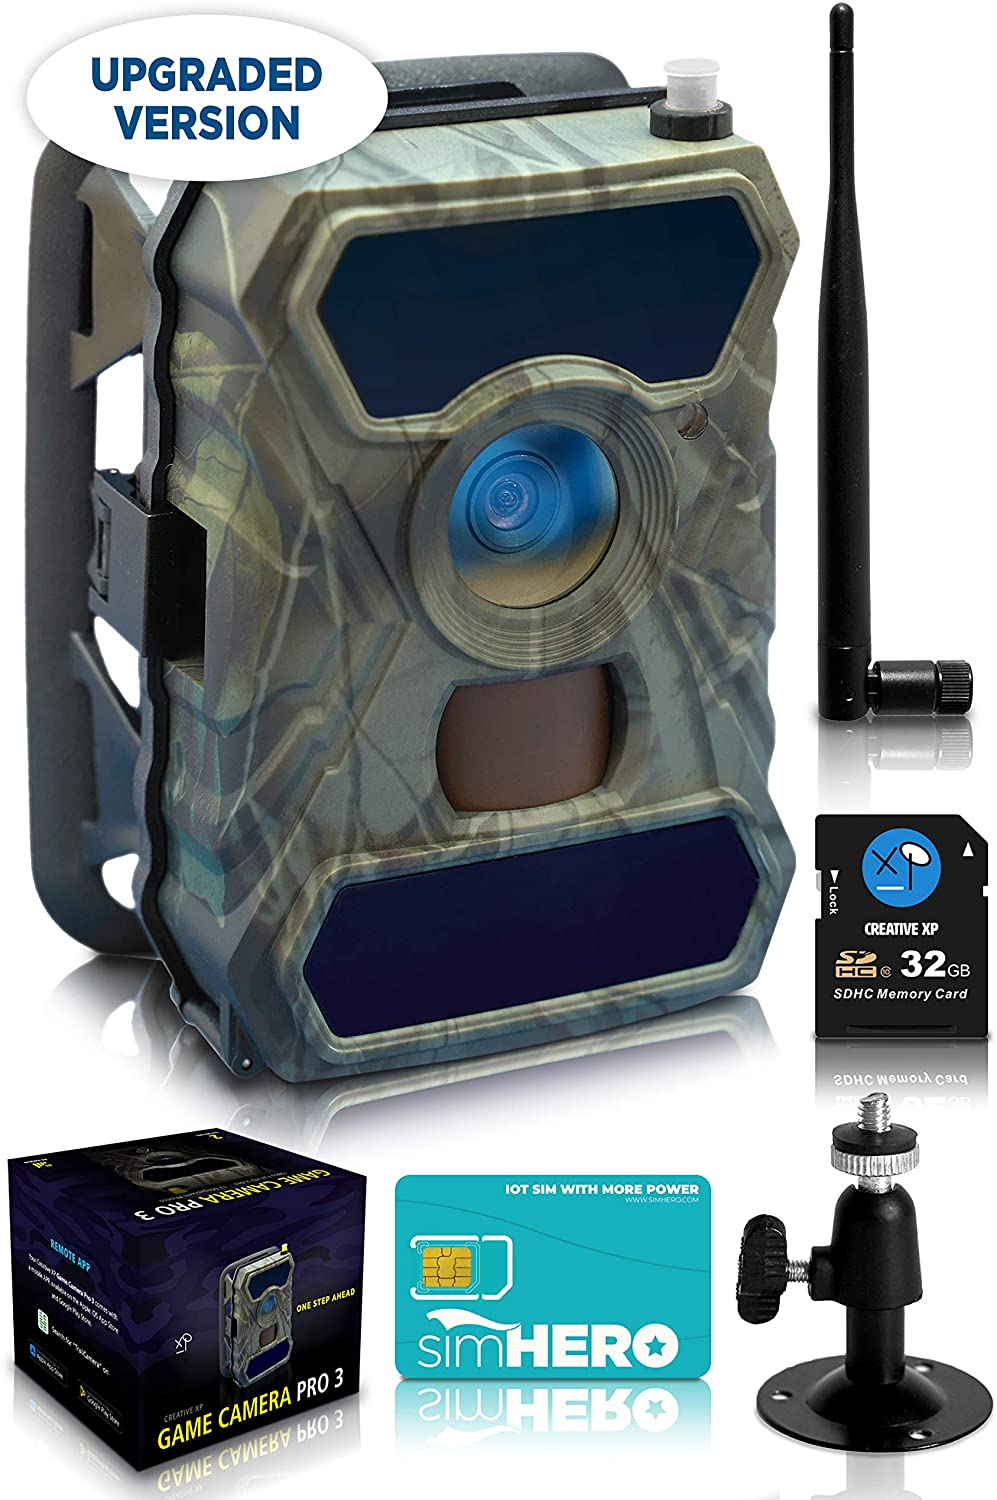 CREATIVE XP (1-Pack) Cellular Trail Cameras, 3G